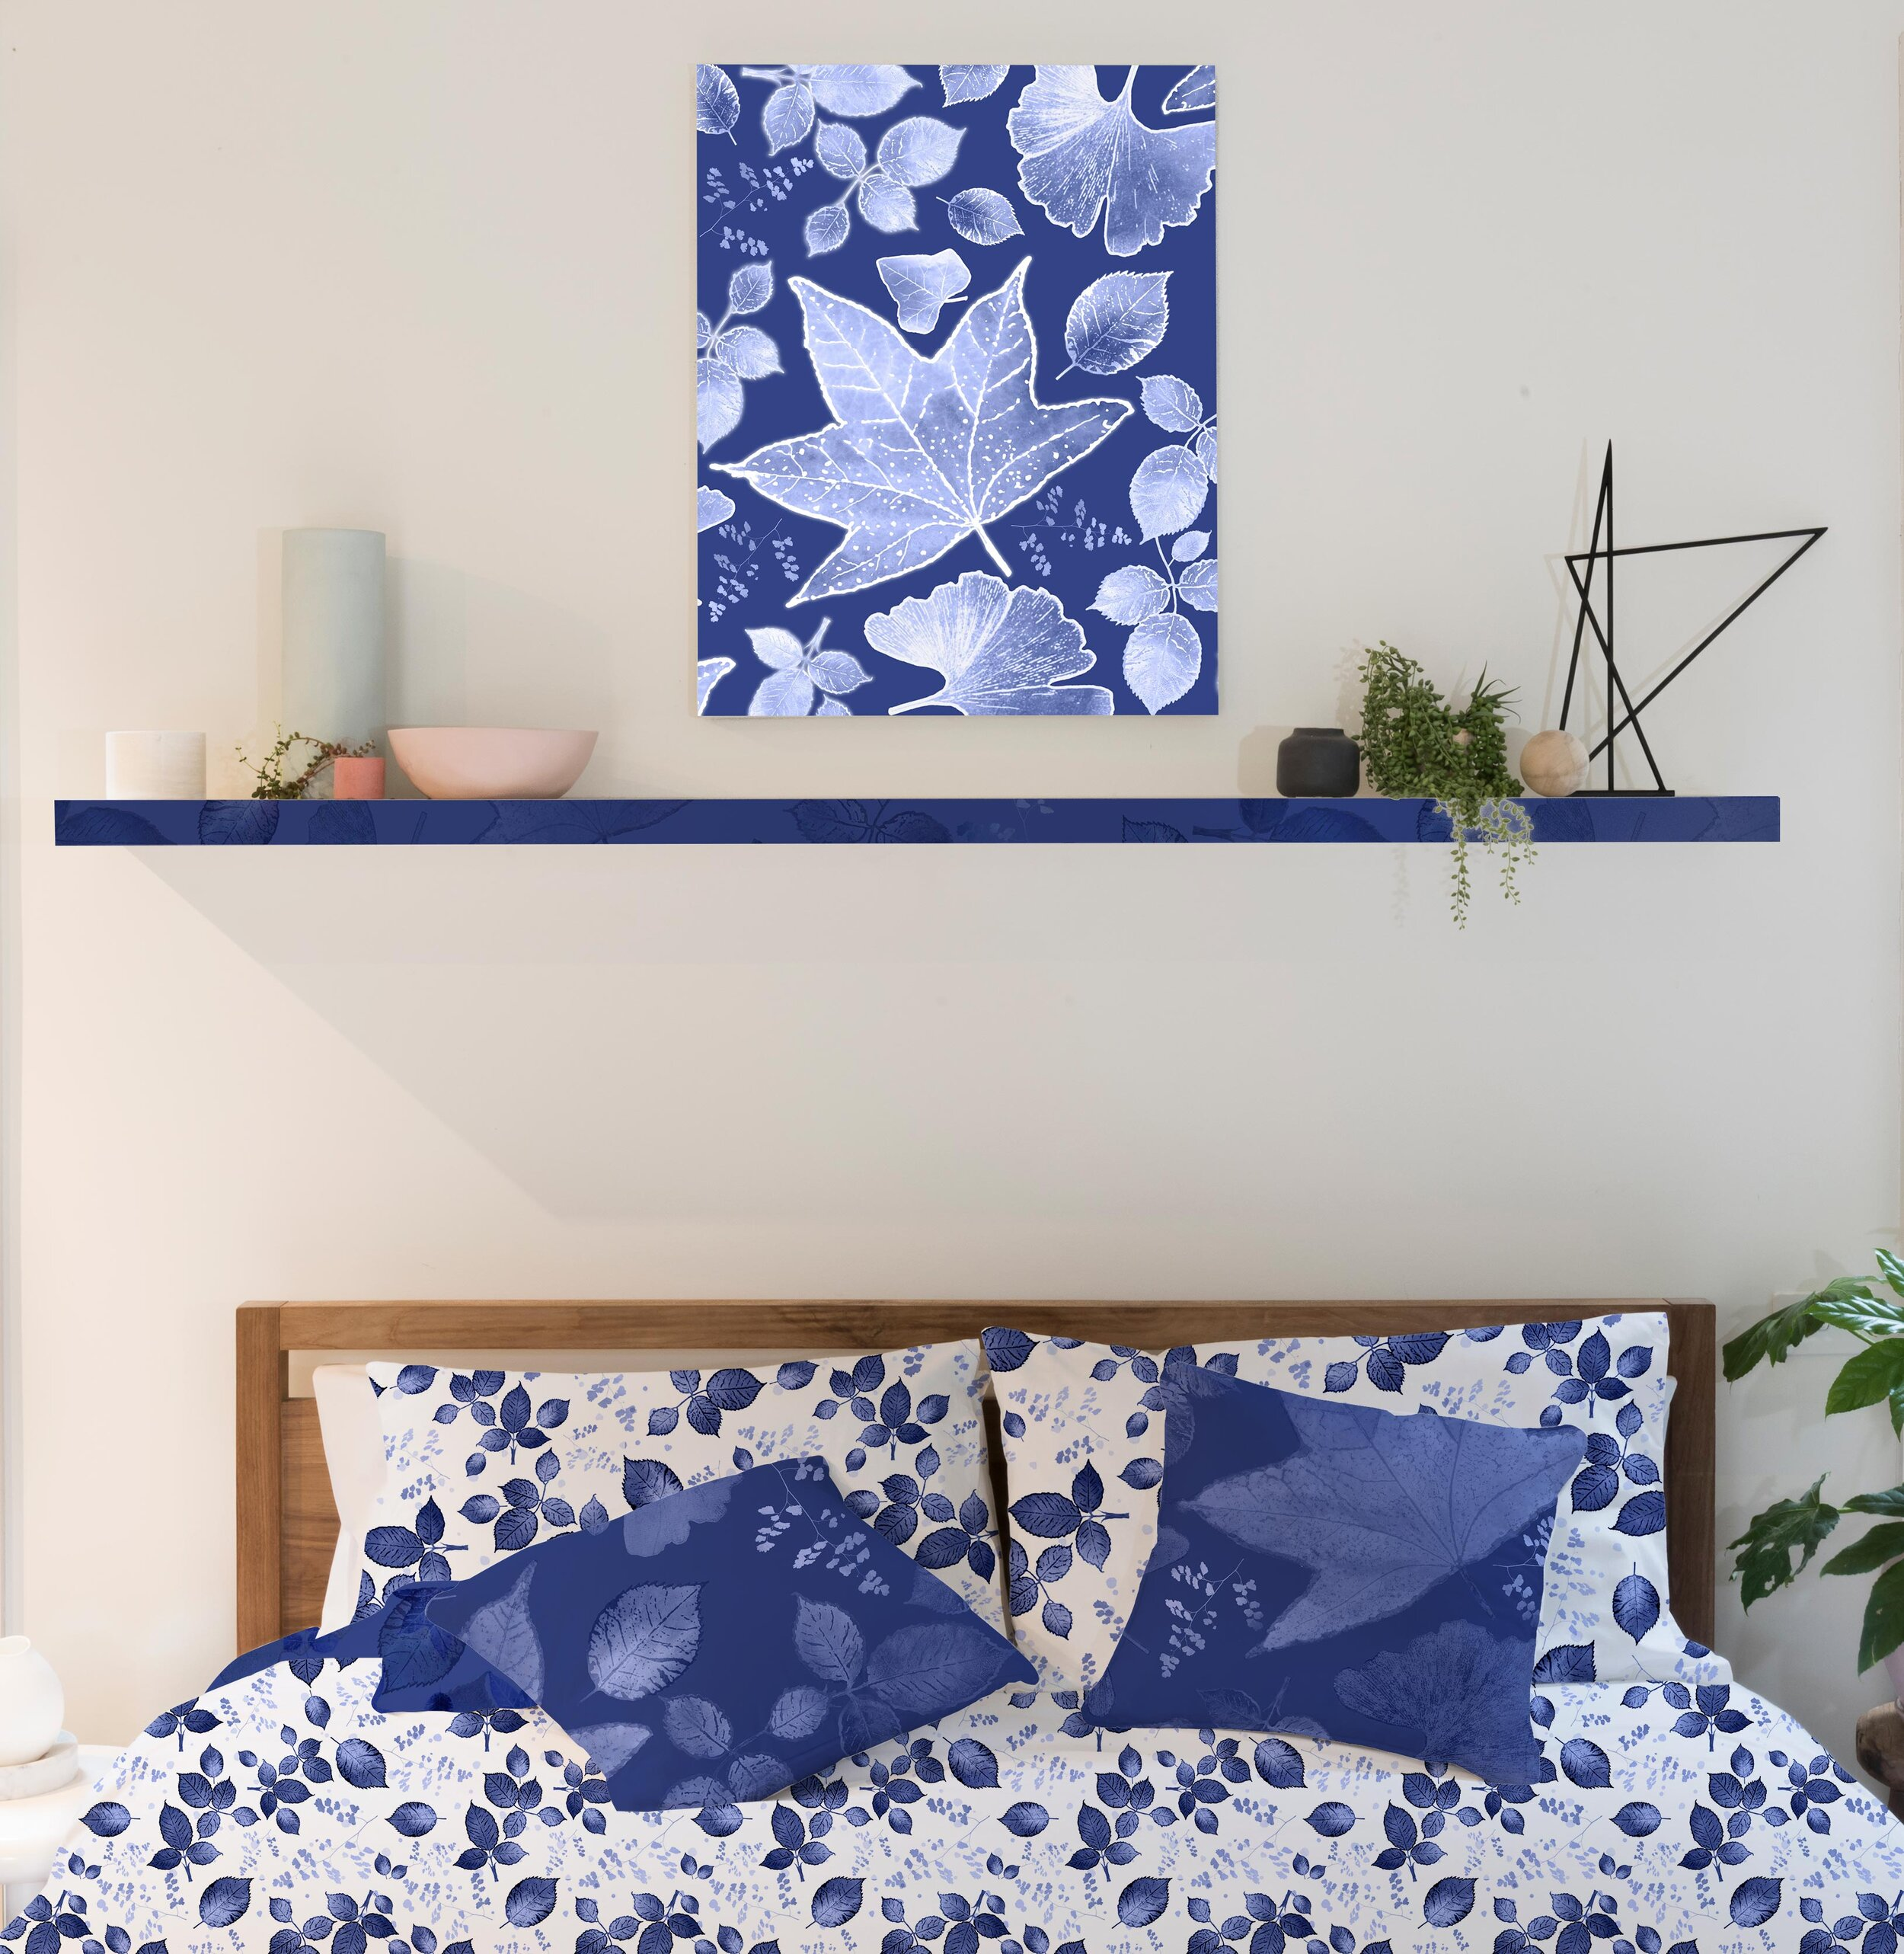 BED_ART mockup blue and white.jpg